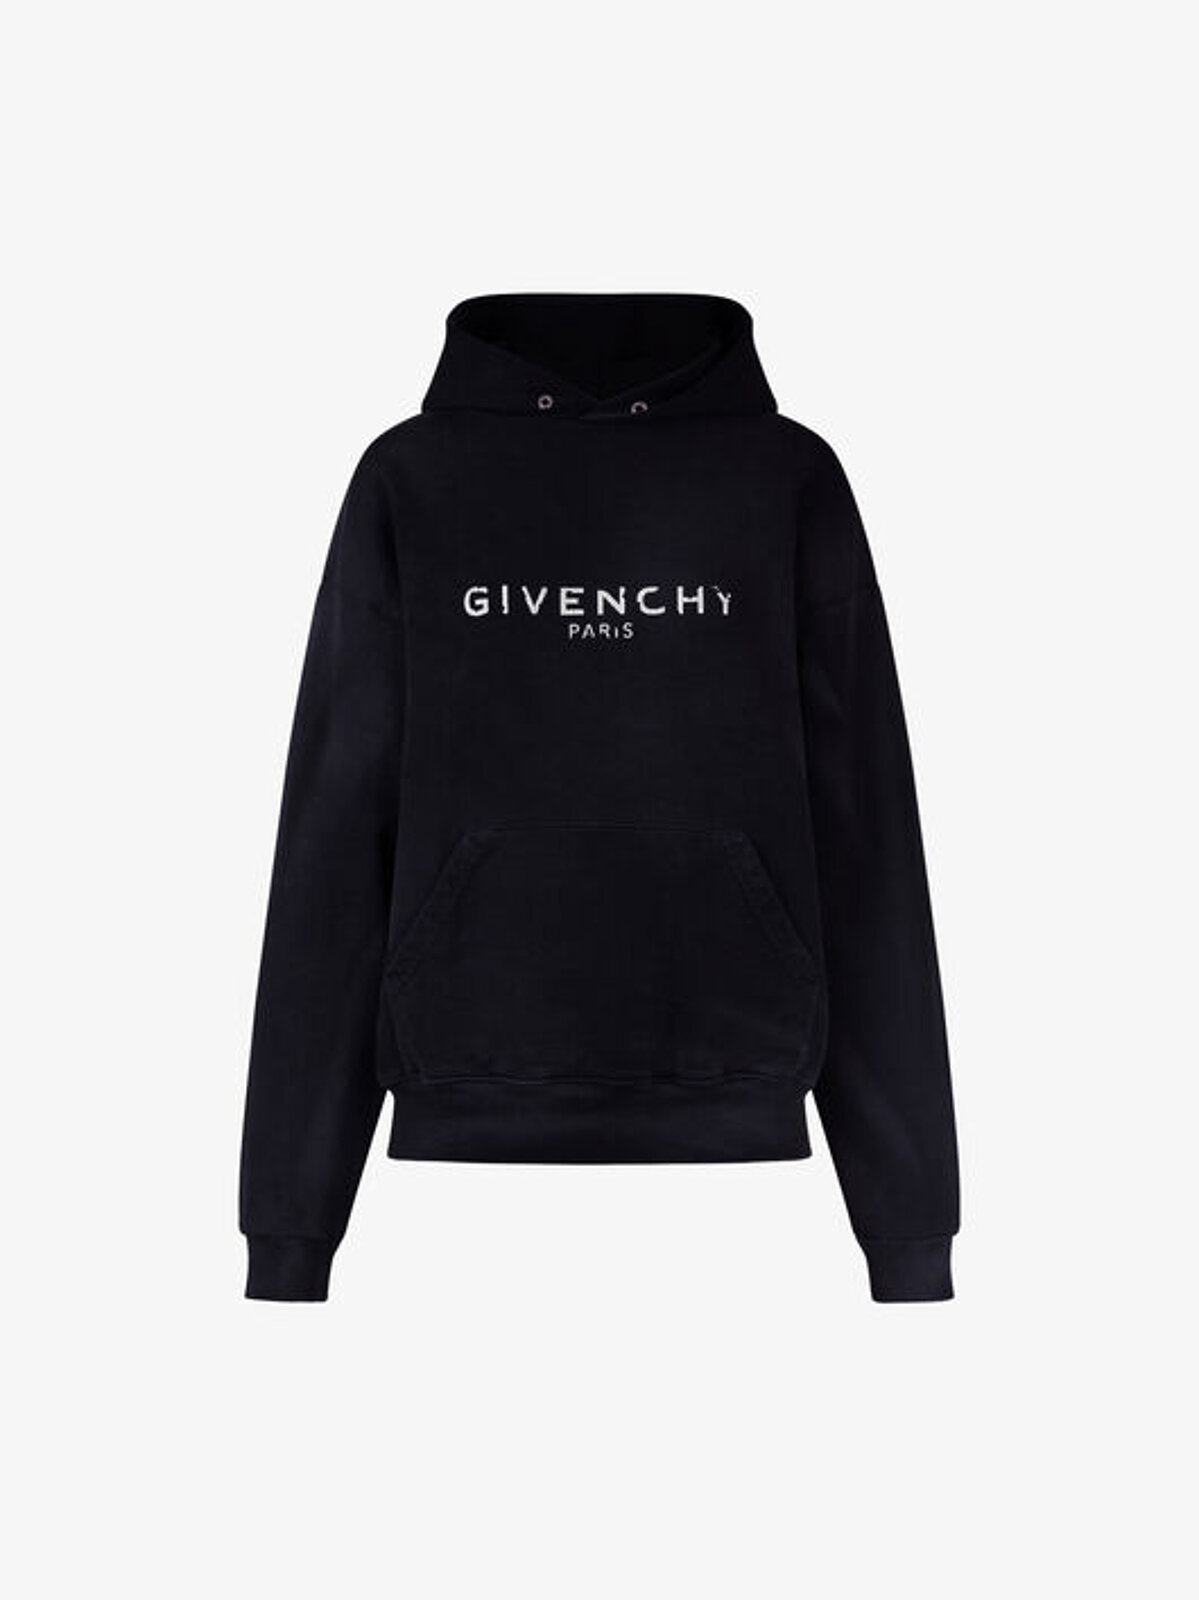 Printed Hooded Sweatshirt - Givenchy